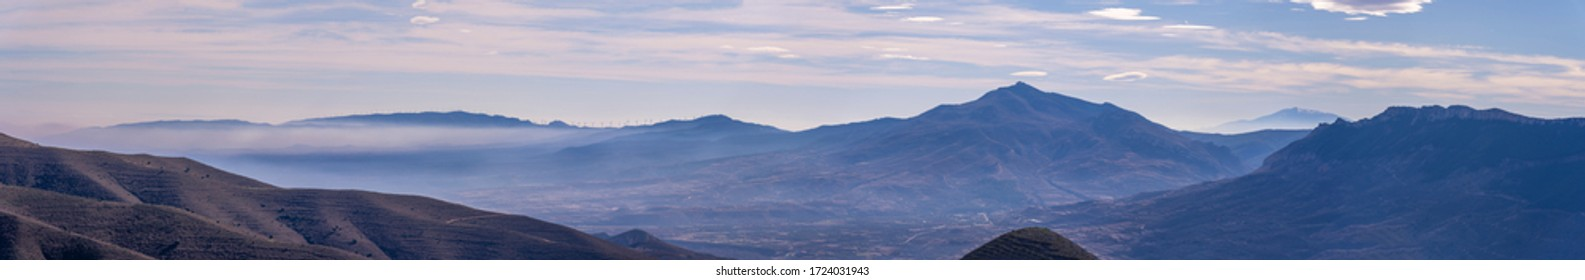 panoramic view from the top of a whole valley, mountains, fog, rivers, etc